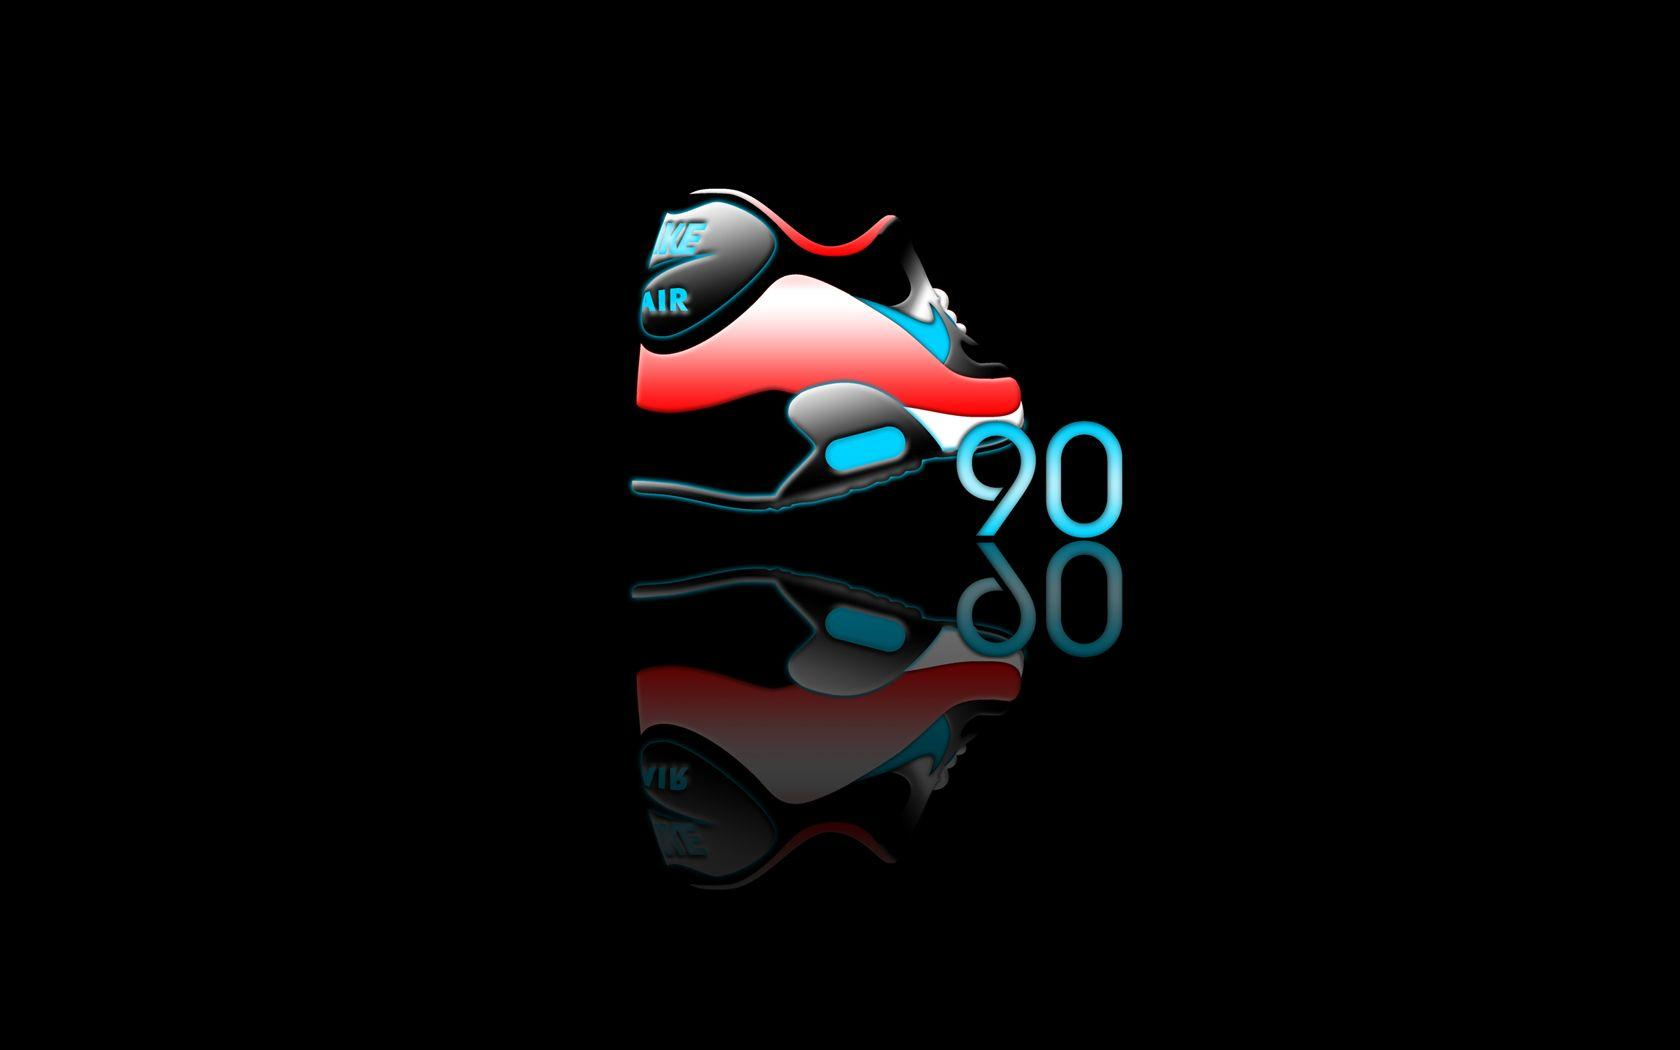 fe26ede446 undefined Air Max Wallpapers (33 Wallpapers) | Adorable Wallpapers .